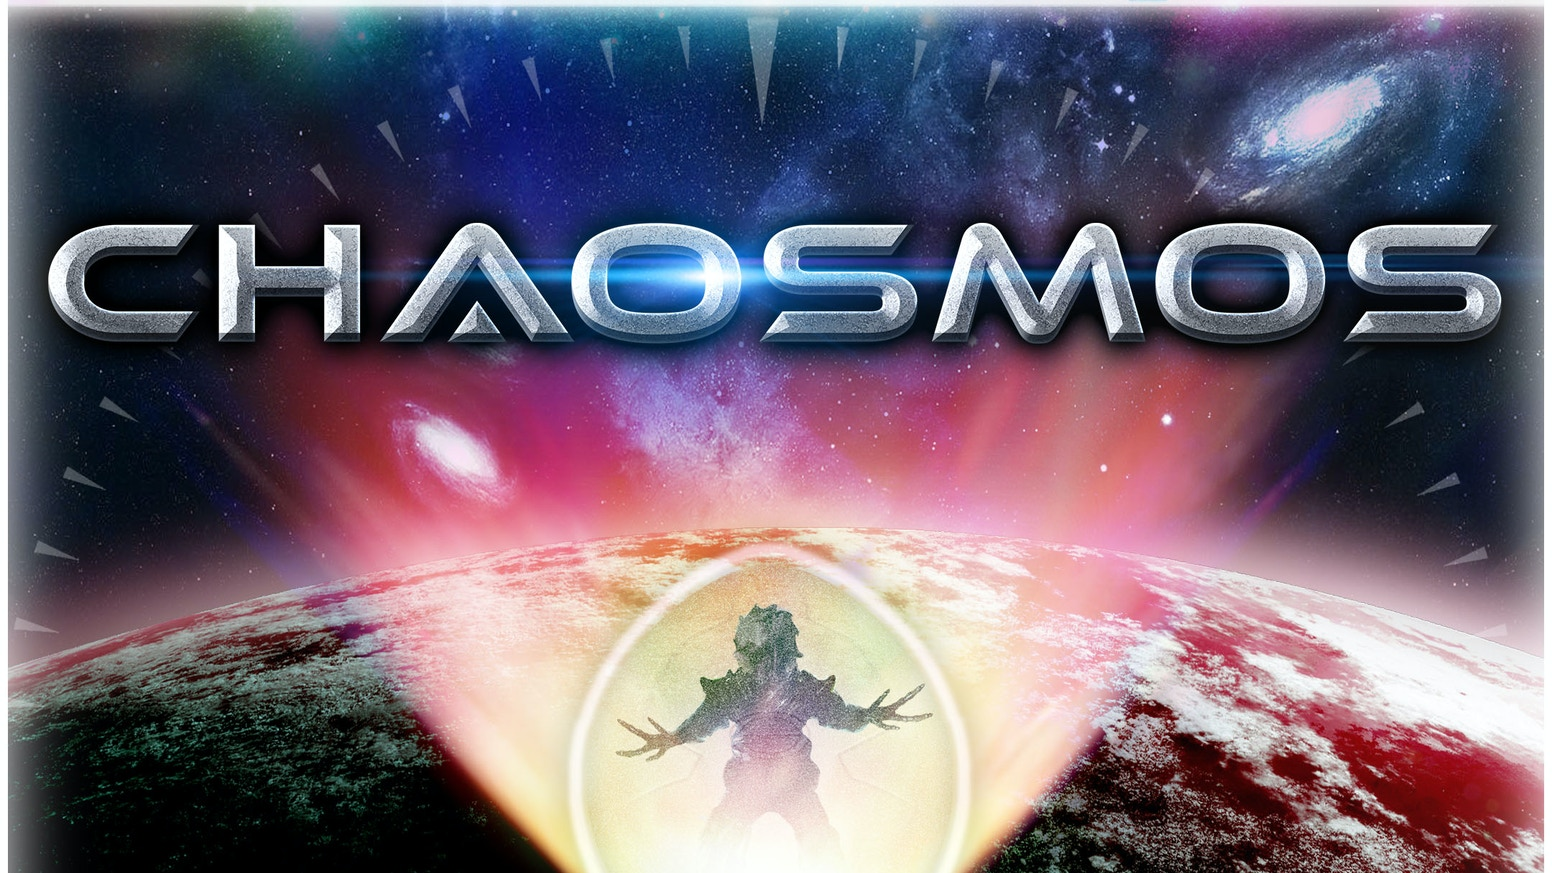 Chaosmos As The Universe Ends Hunt Begins By Mirror Box Games Switch Runner 3 Launch Edition Bonus English Us Kickstarter